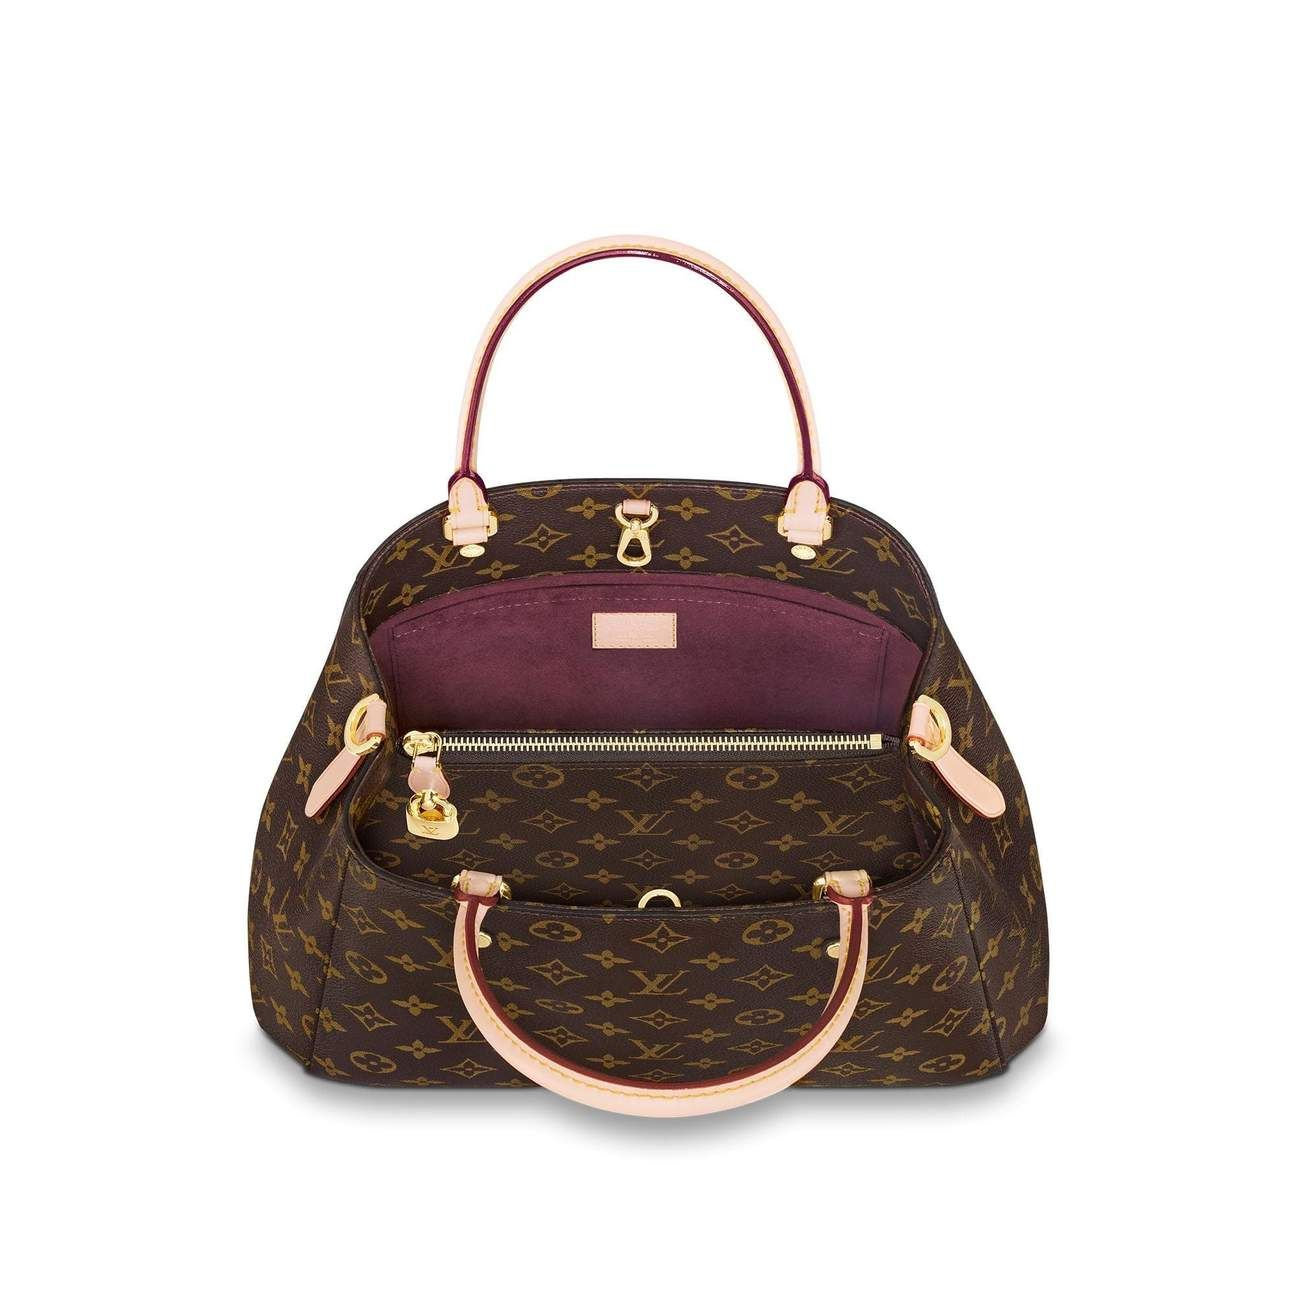 0eb084b6d957 Louis Montaigne Bag Monogram Print Brown Color MM in 2019